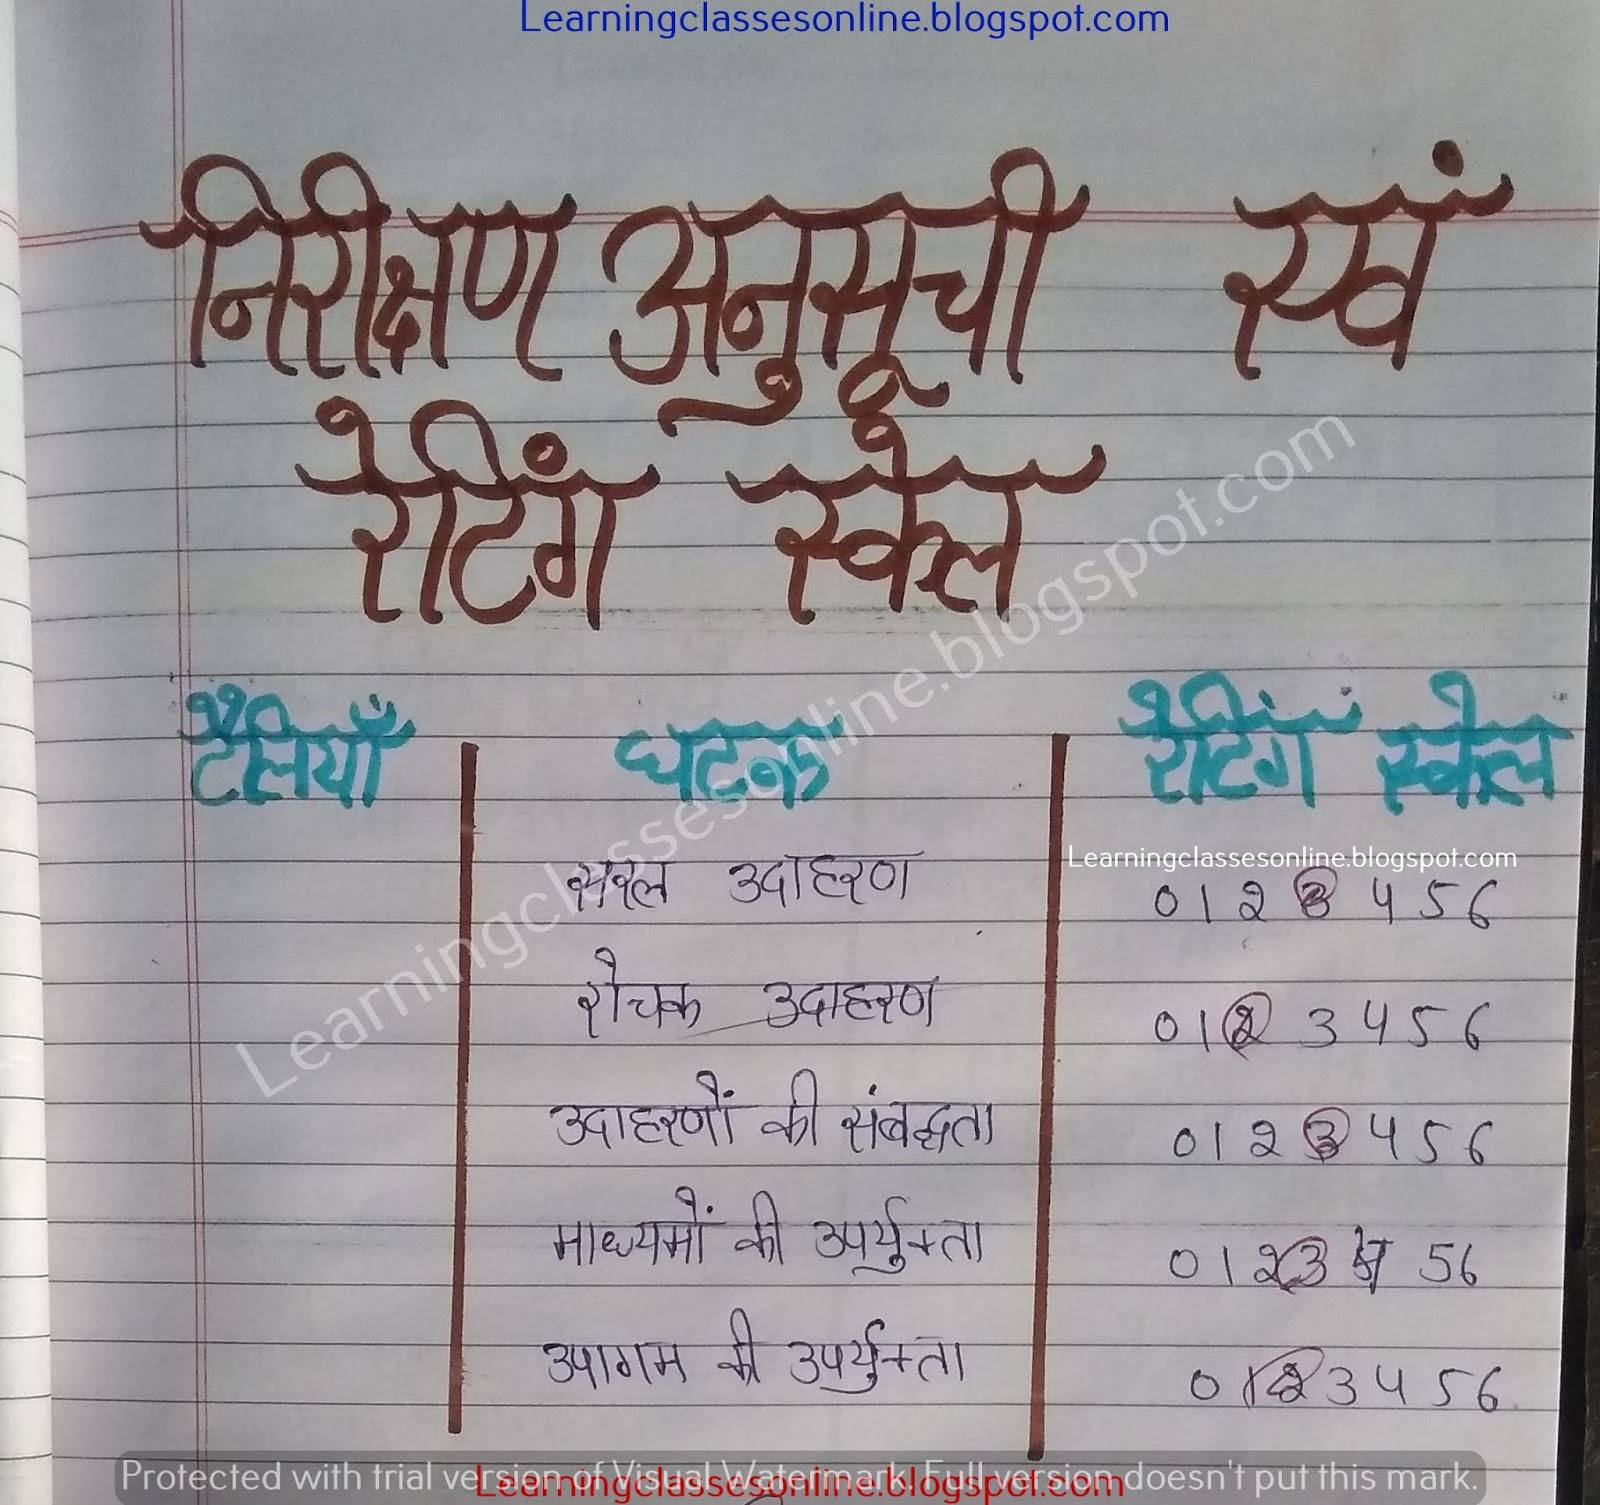 hindi microteaching lesson plan for class 6, 7 and 8